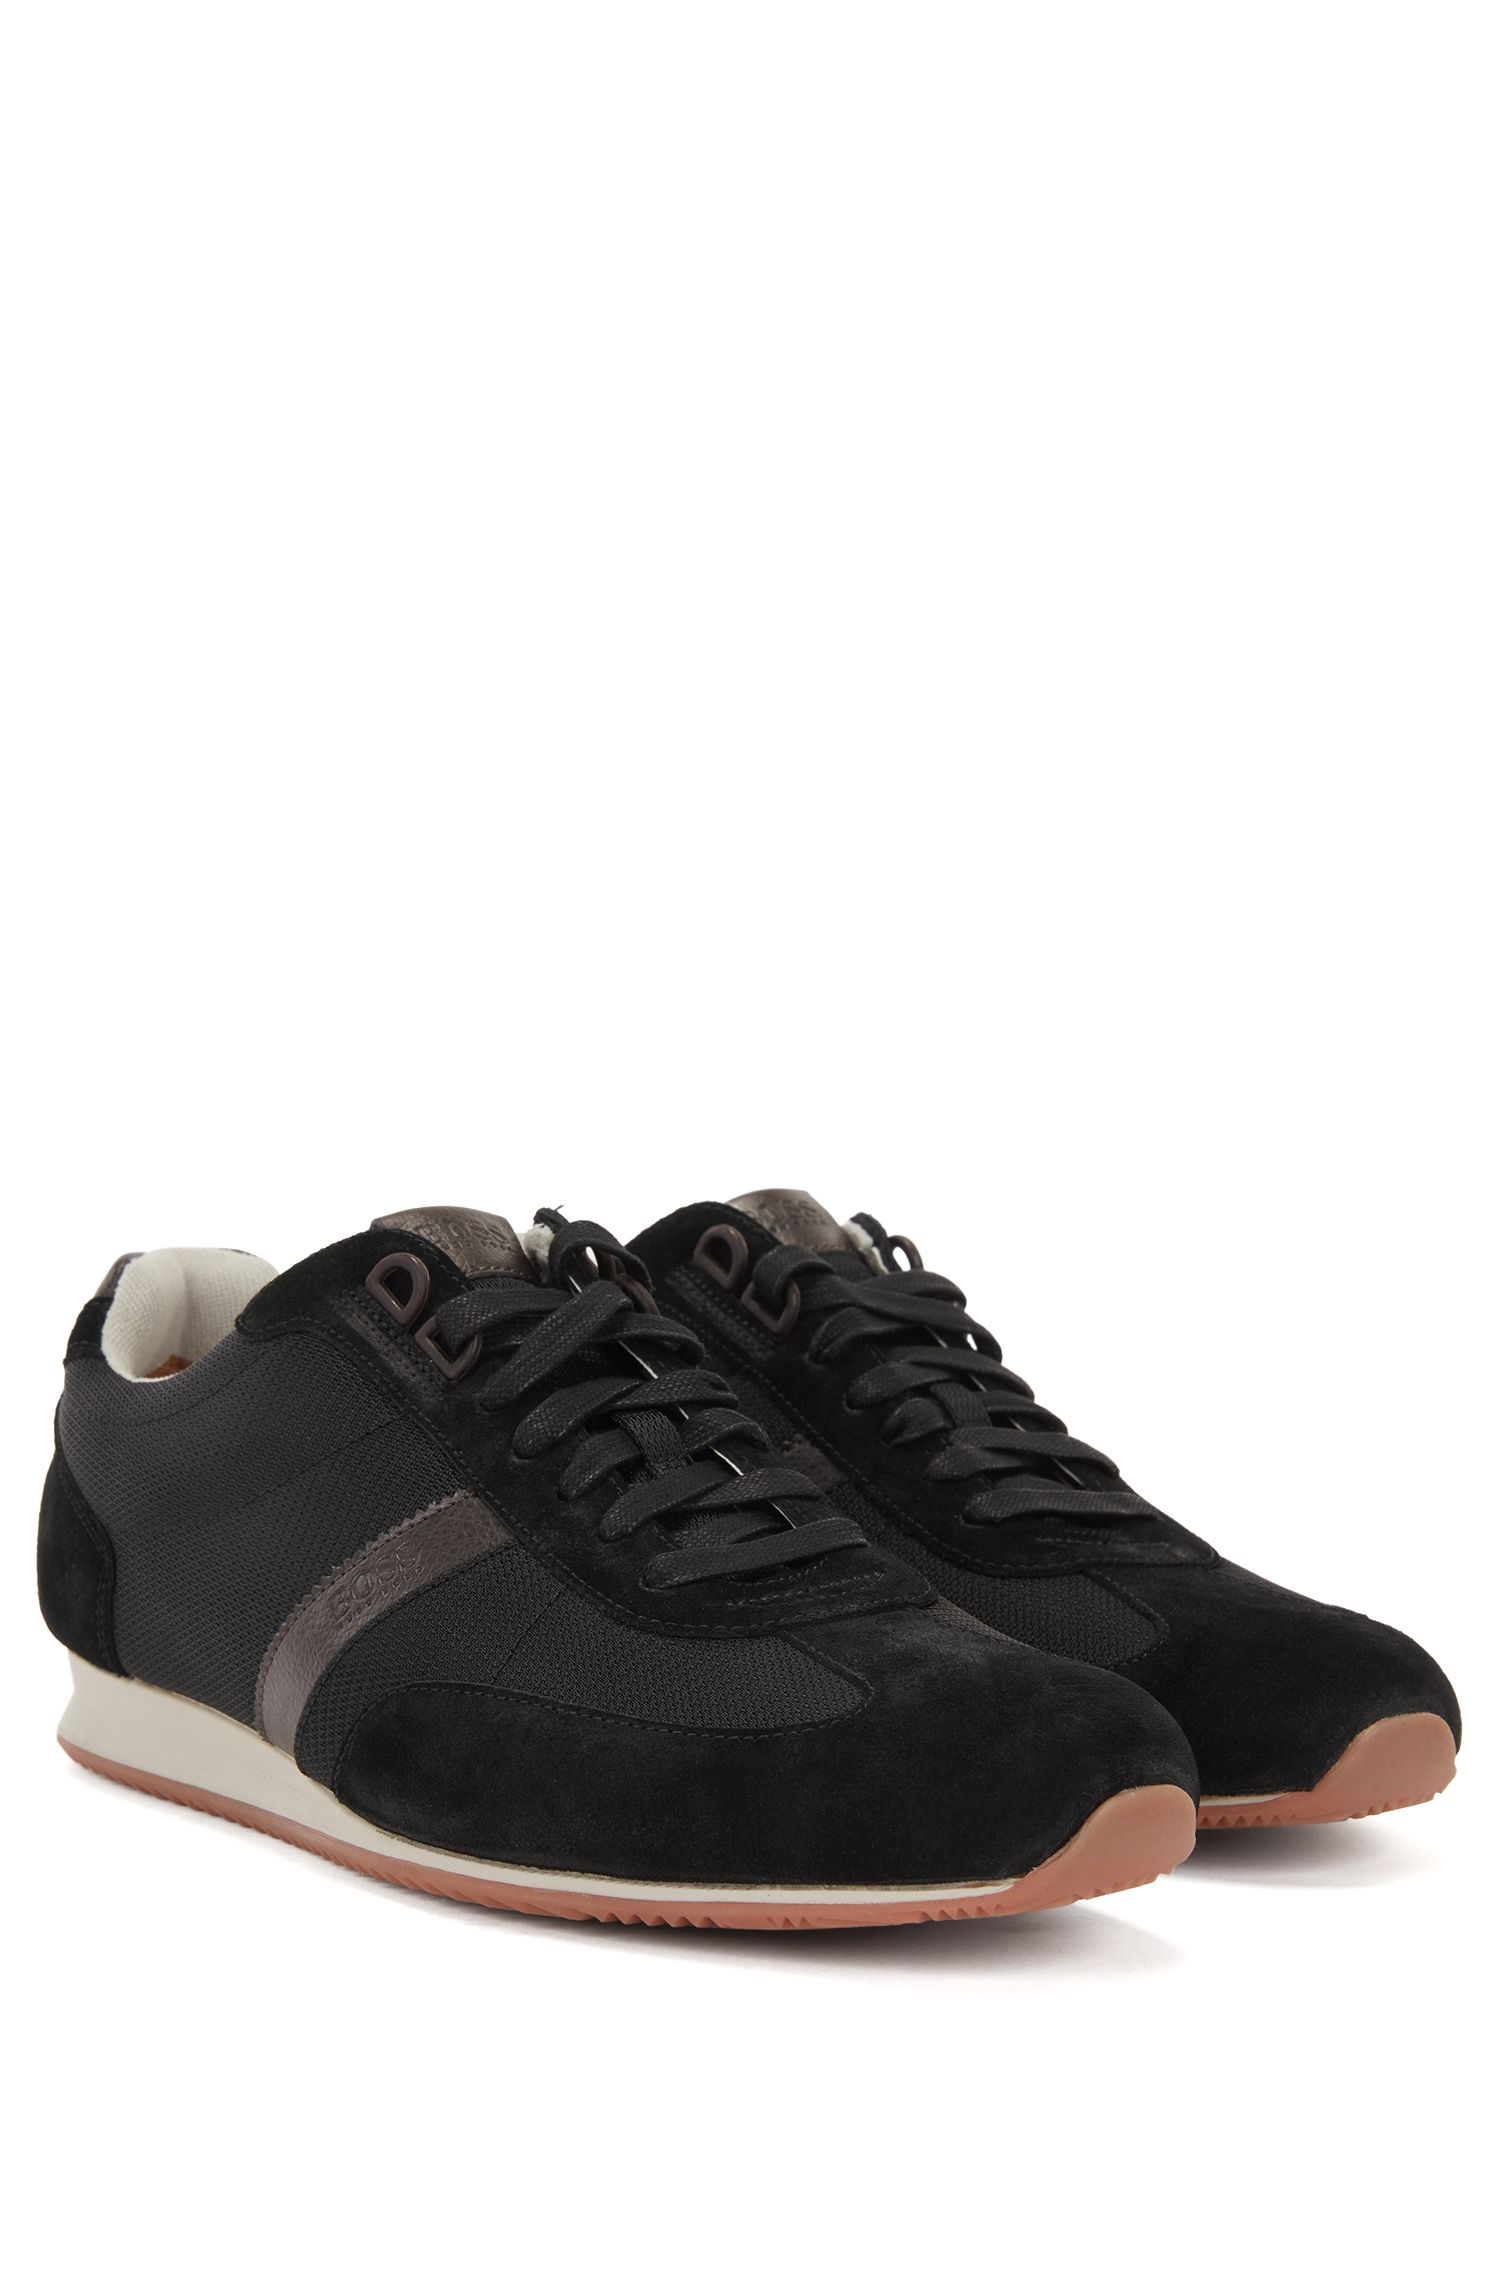 Low-top trainers with nylon and suede uppers BOSS